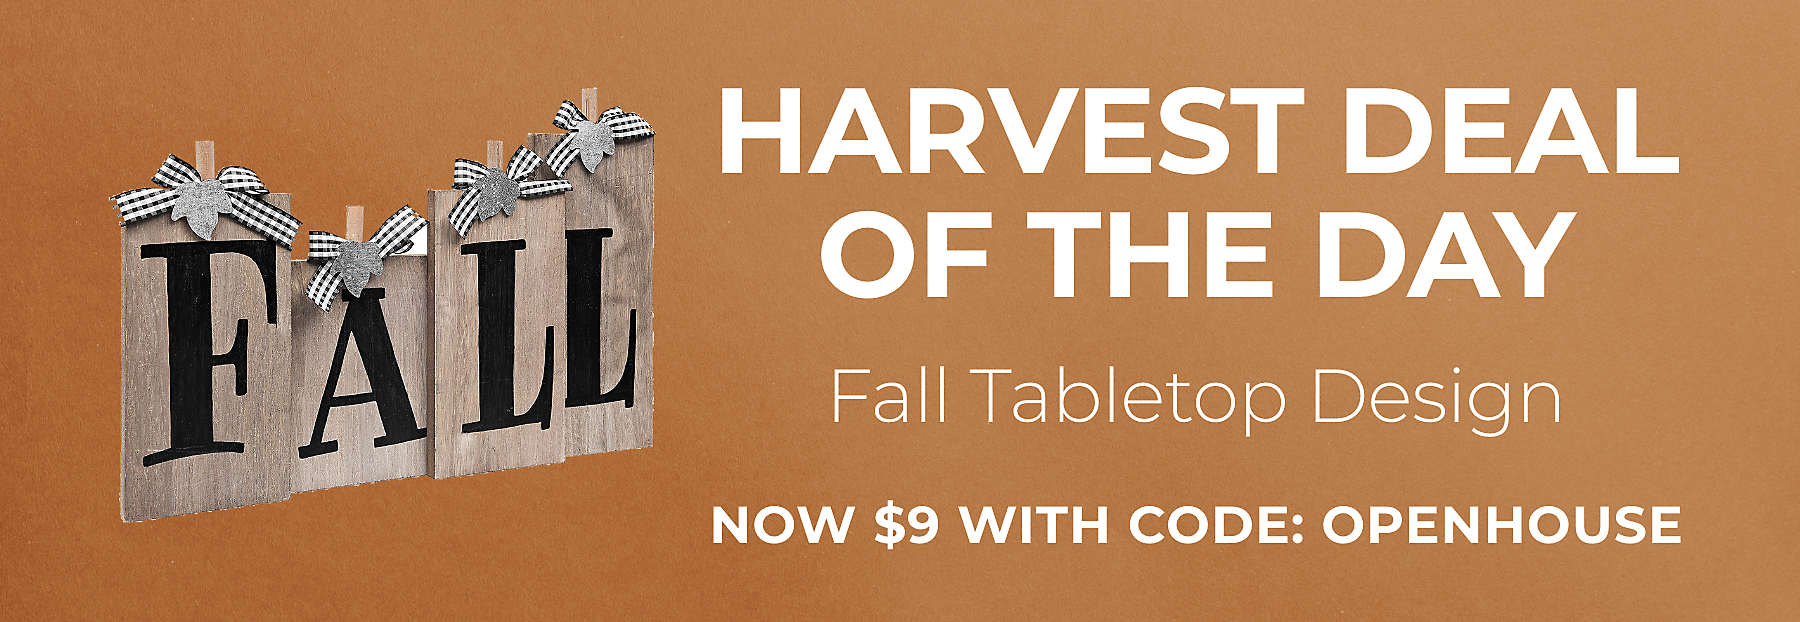 Harvest Deals of the Day Fall Tabletop Sign Now $9 with code: OPENHOUSE